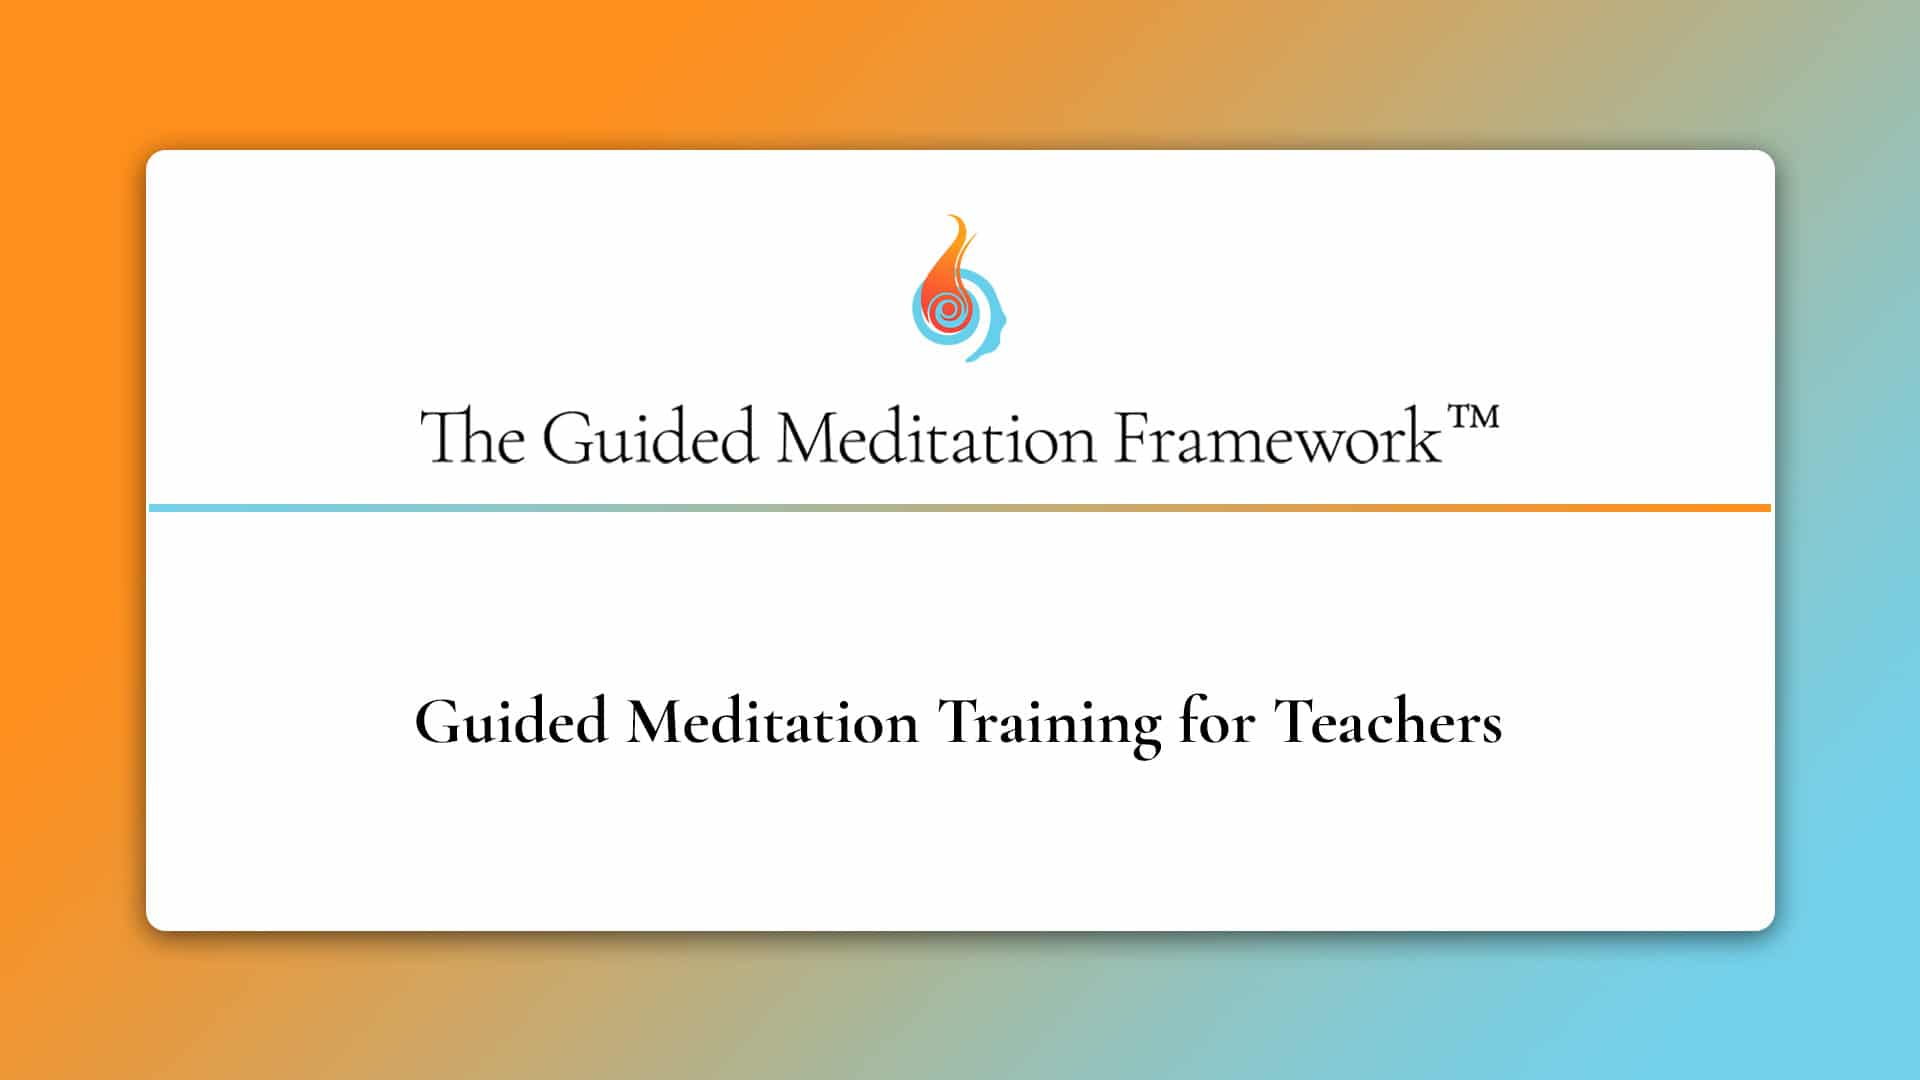 The Guided Meditation Framework for teachers